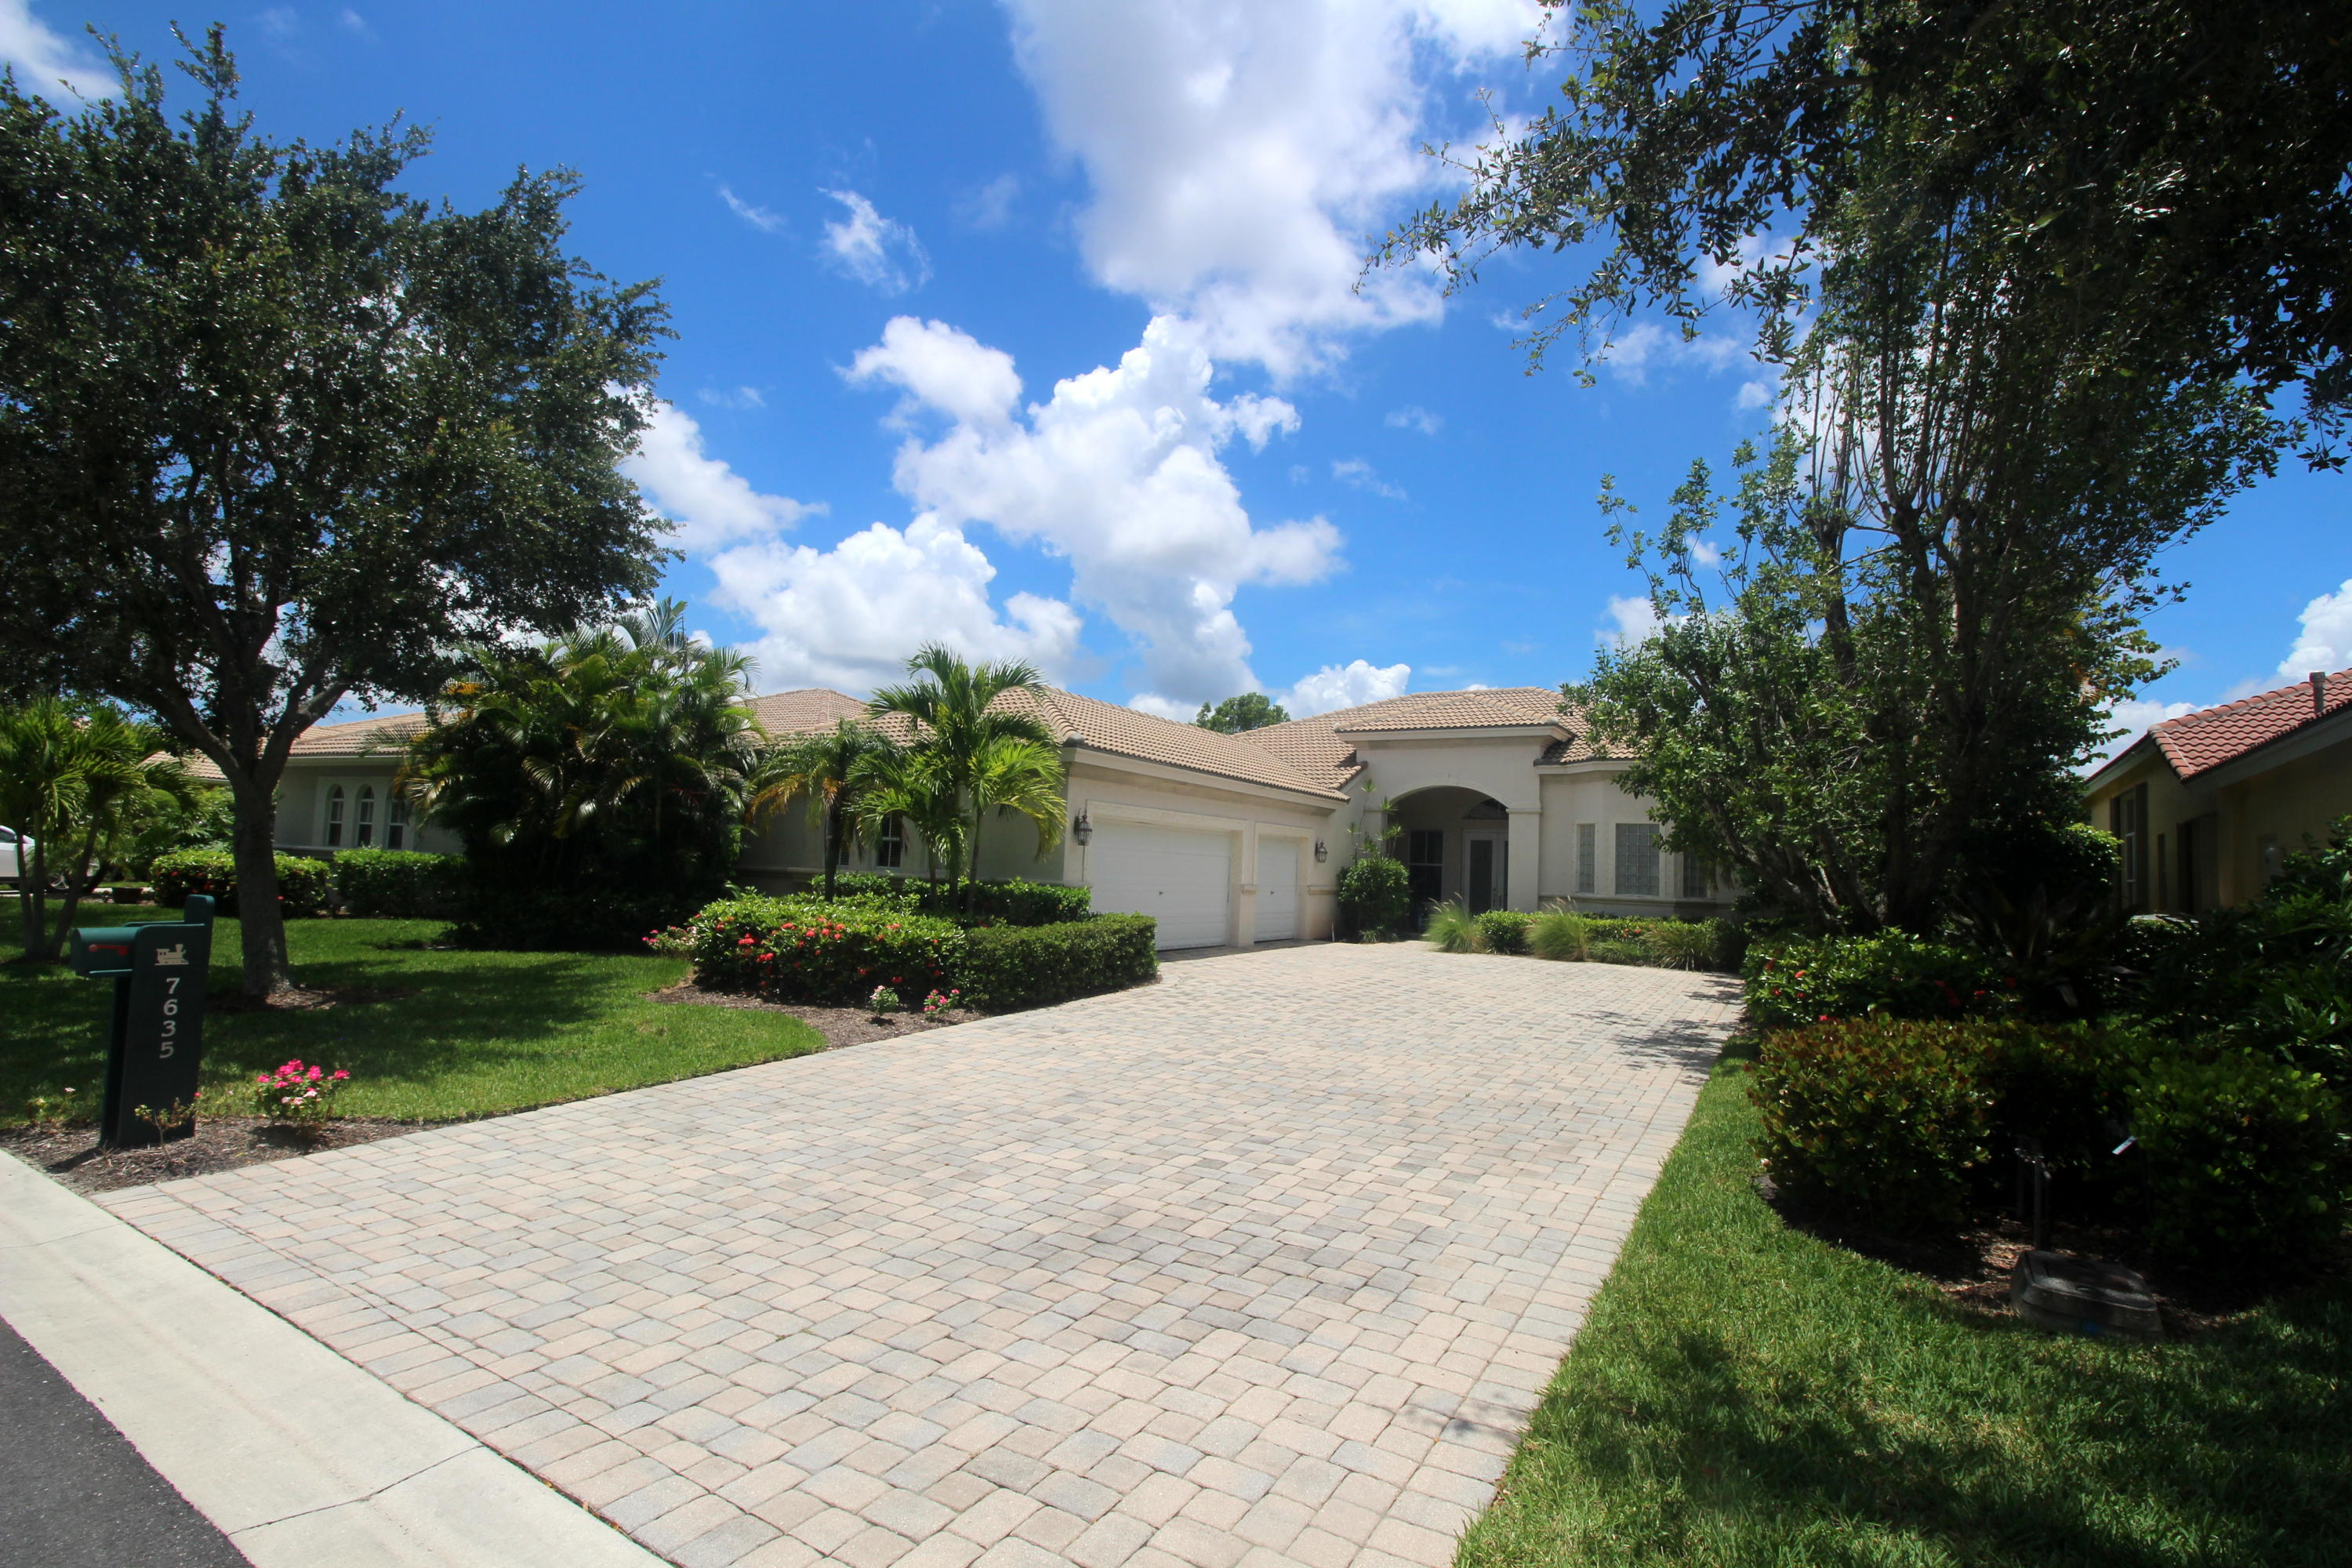 7635 Ironhorse Boulevard, West Palm Beach, Florida 33412, 3 Bedrooms Bedrooms, ,2.1 BathroomsBathrooms,A,Single family,Ironhorse,RX-10483522